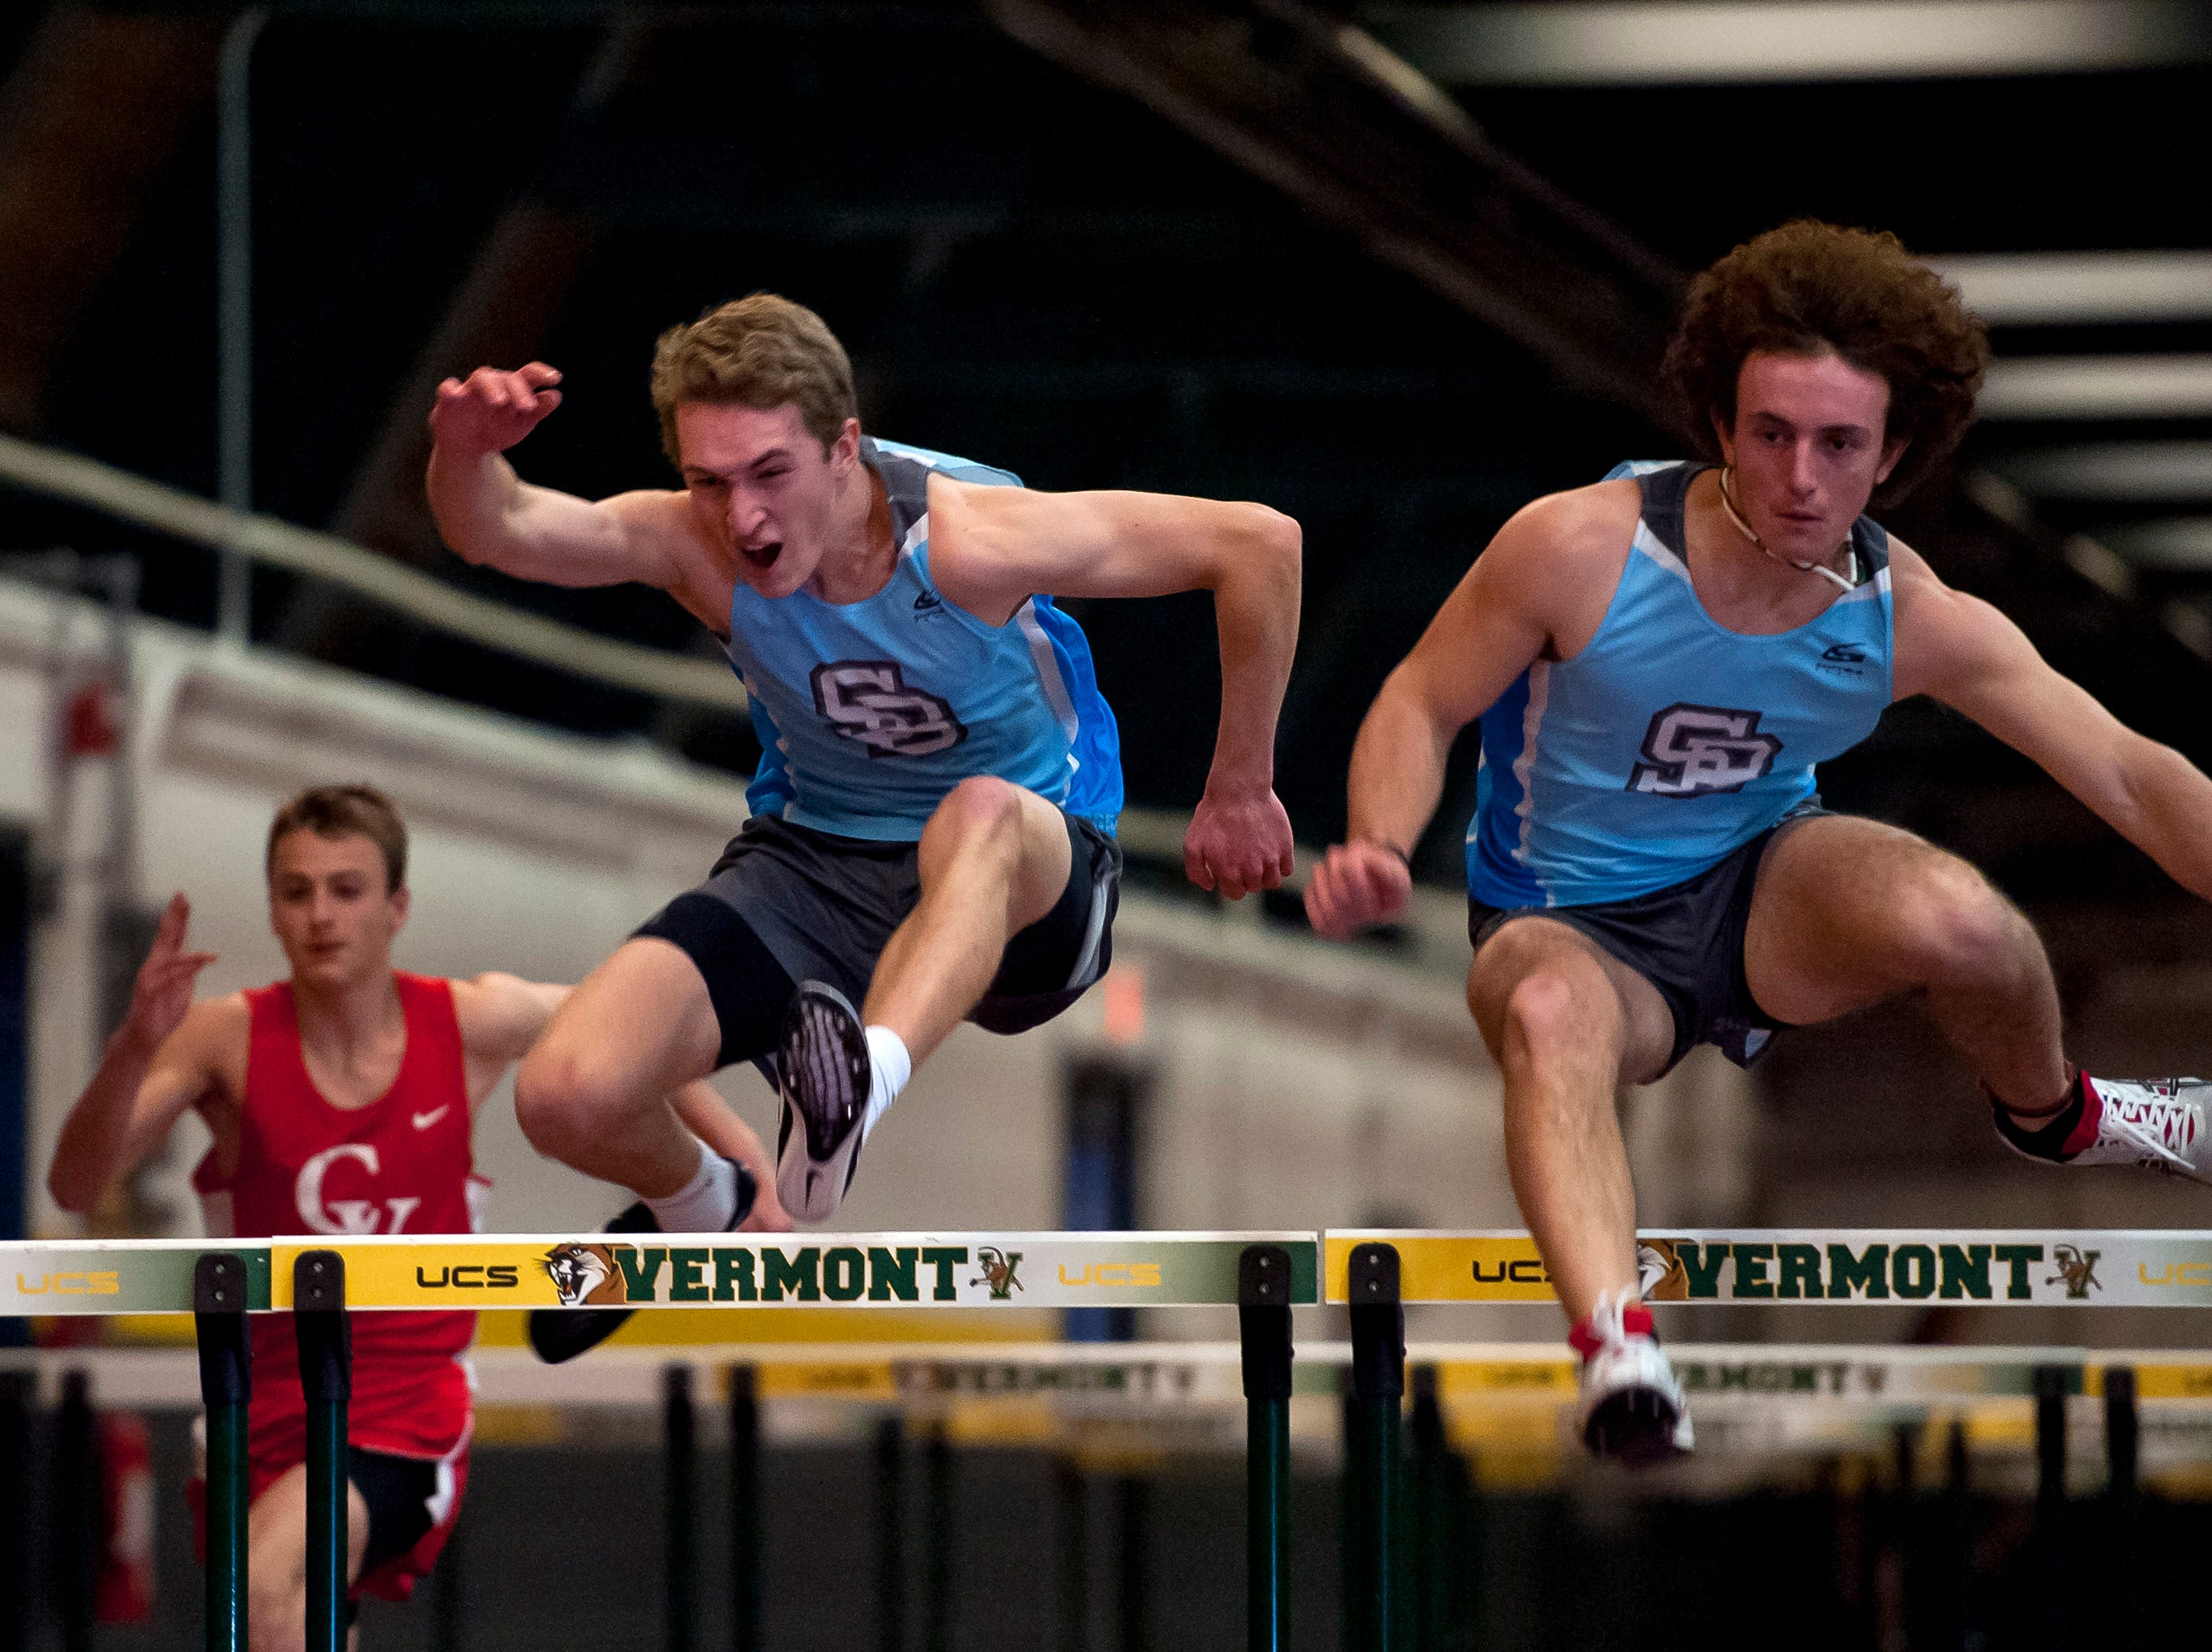 South Burlington's Justo Velez, right, and Quinn Pidgeon clear the final obstacle in the boys 55 hurdles at the high school indoor track state championships at the University of Vermont on Saturday.